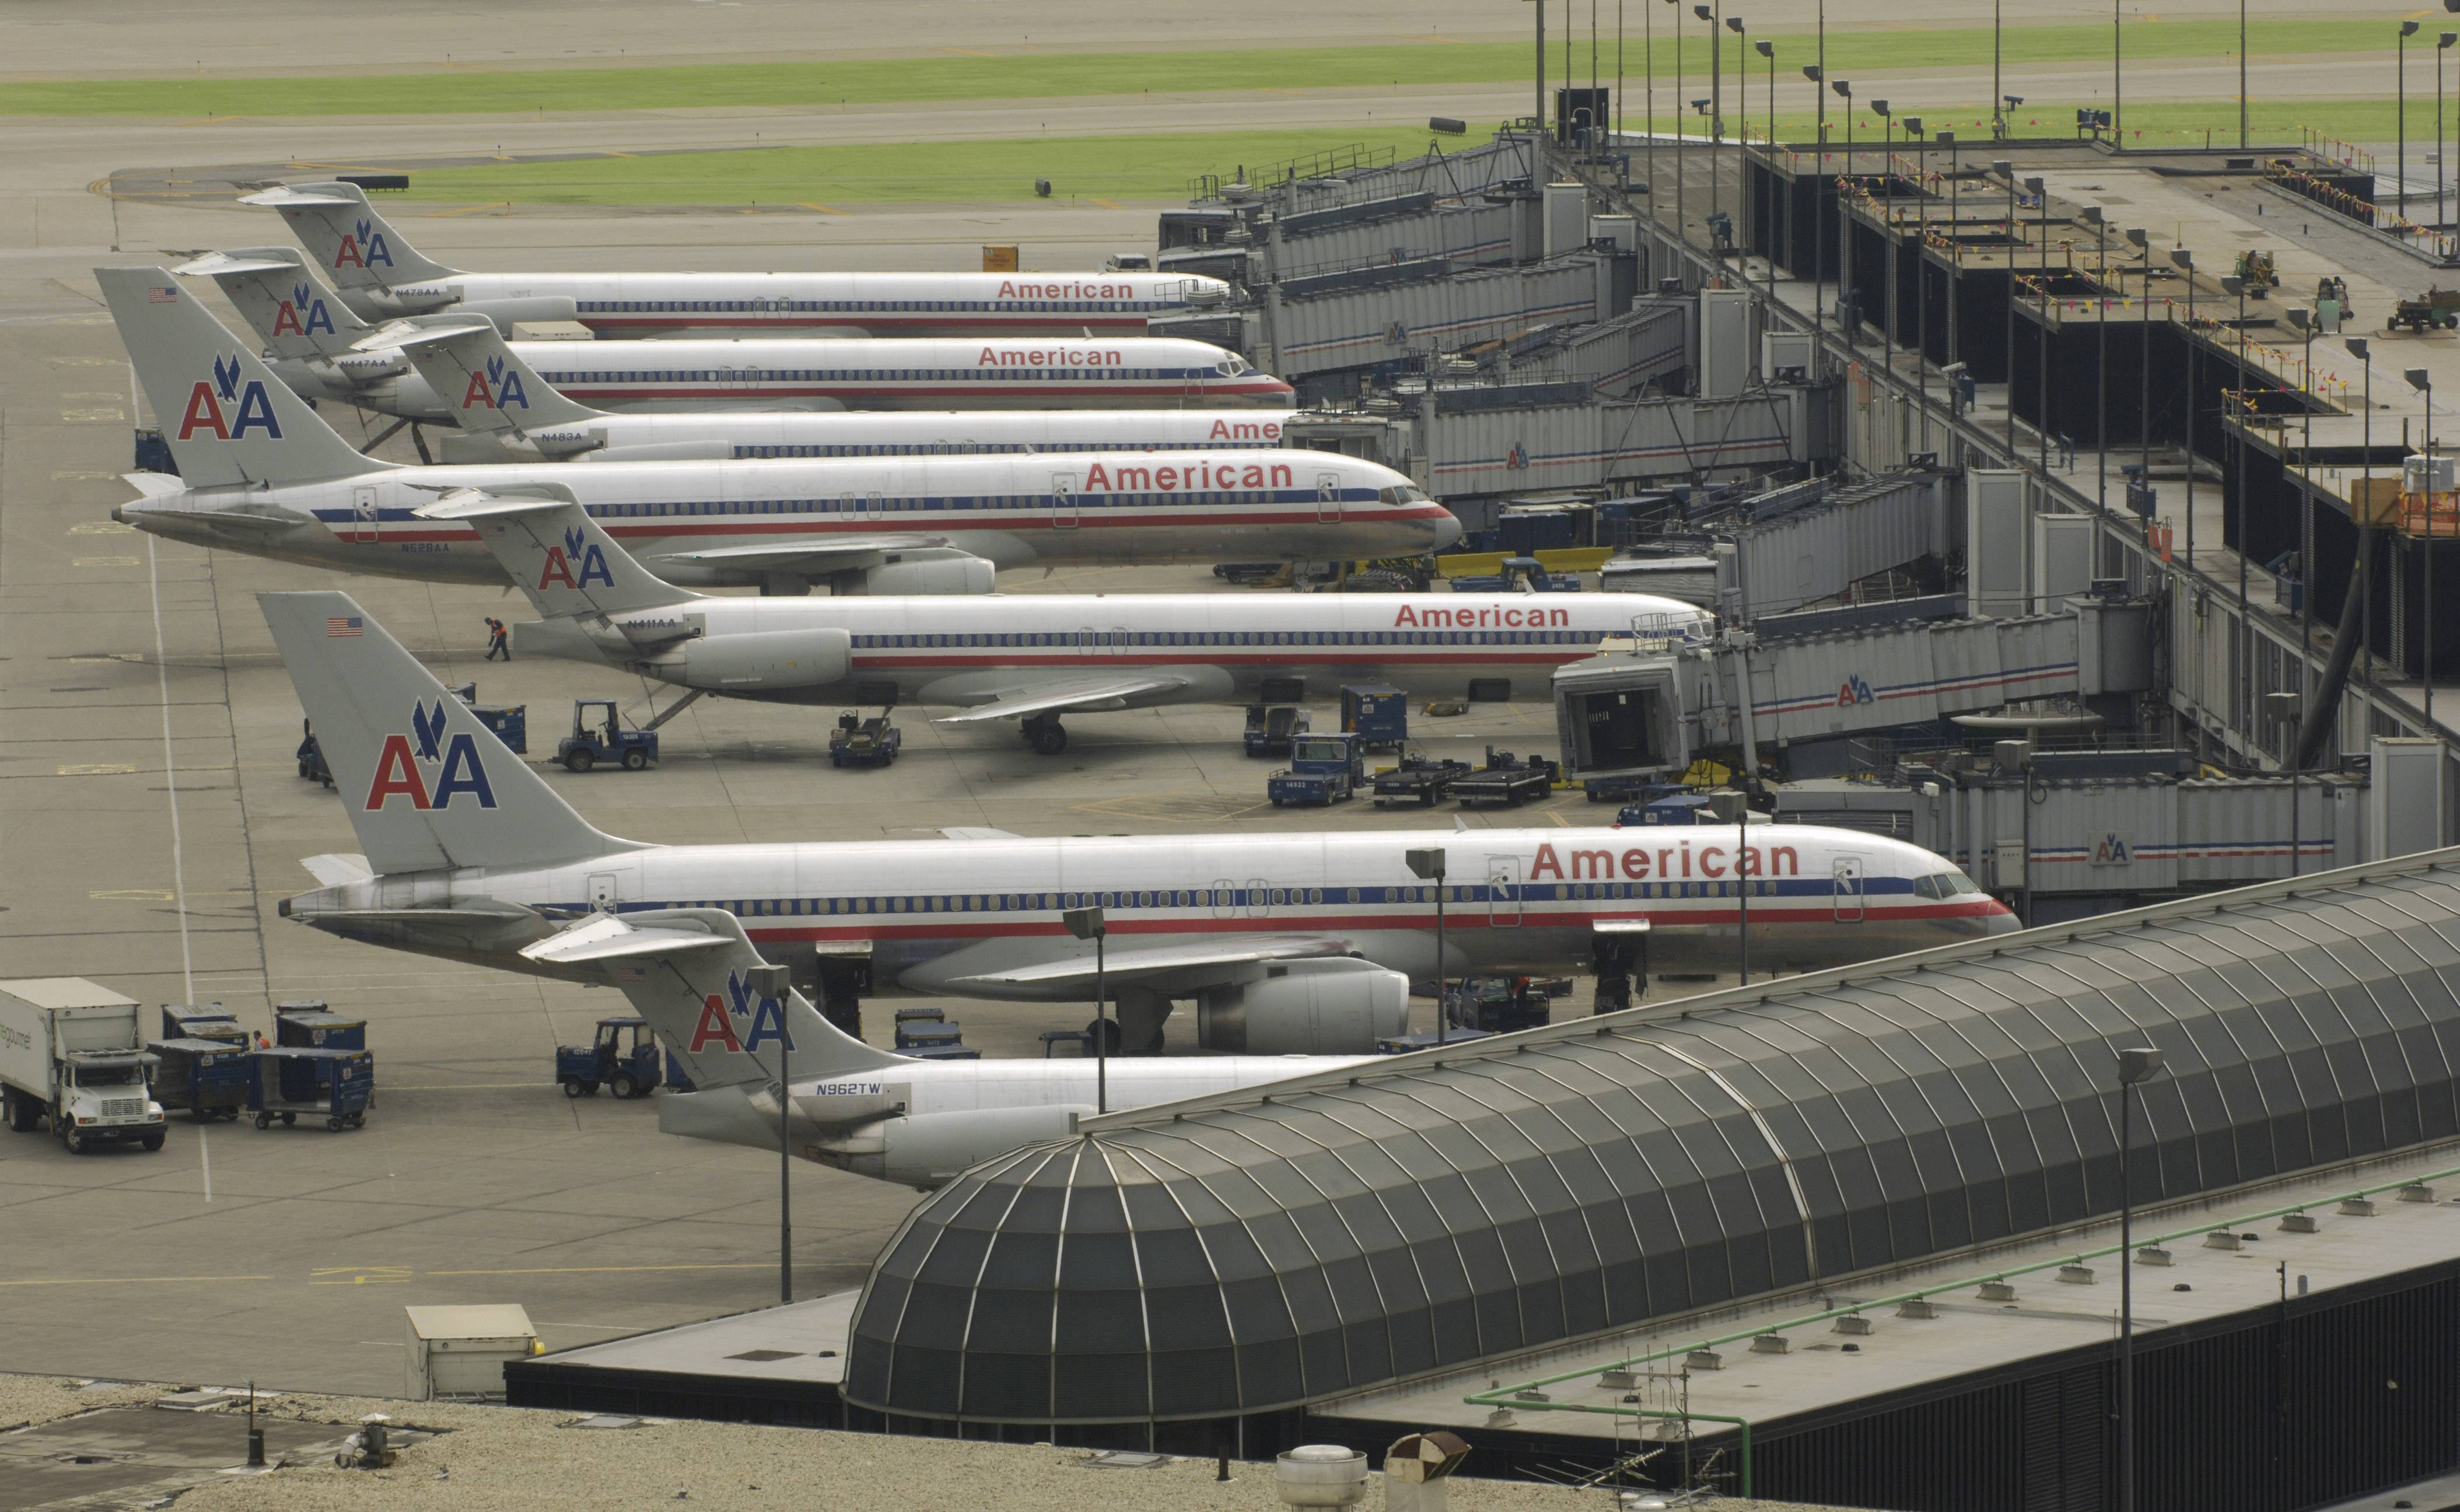 Details of an O'Hare expansion plan will be revealed Wednesday at a Chicago City Council meeting.